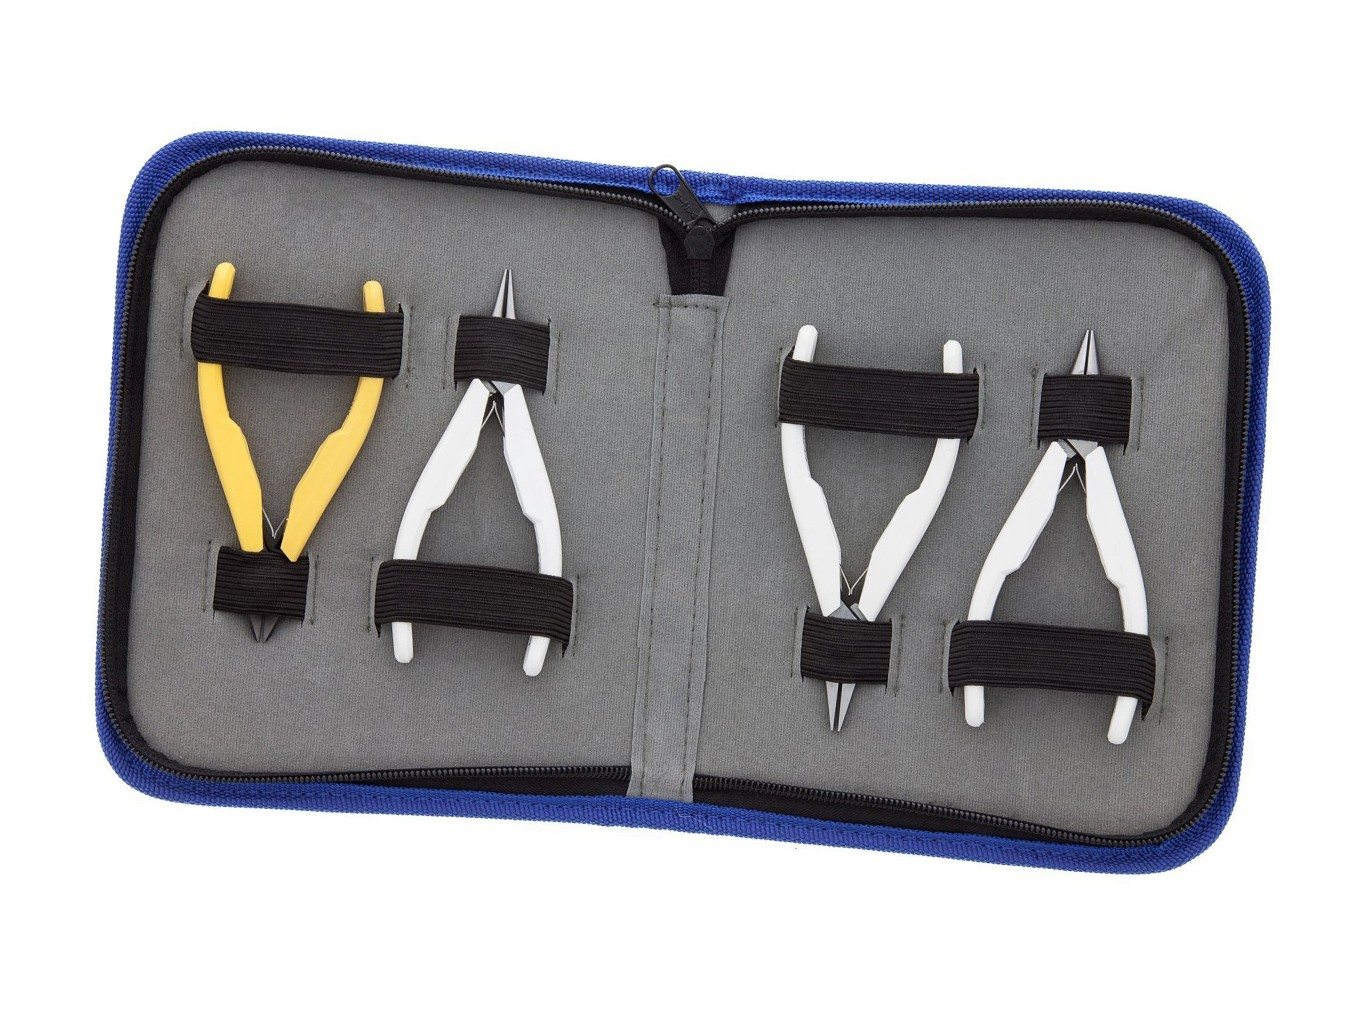 4-Piece Lindstrom® Plier Set with RX7490, RX7590, RX7893, and RX8141 Pliers